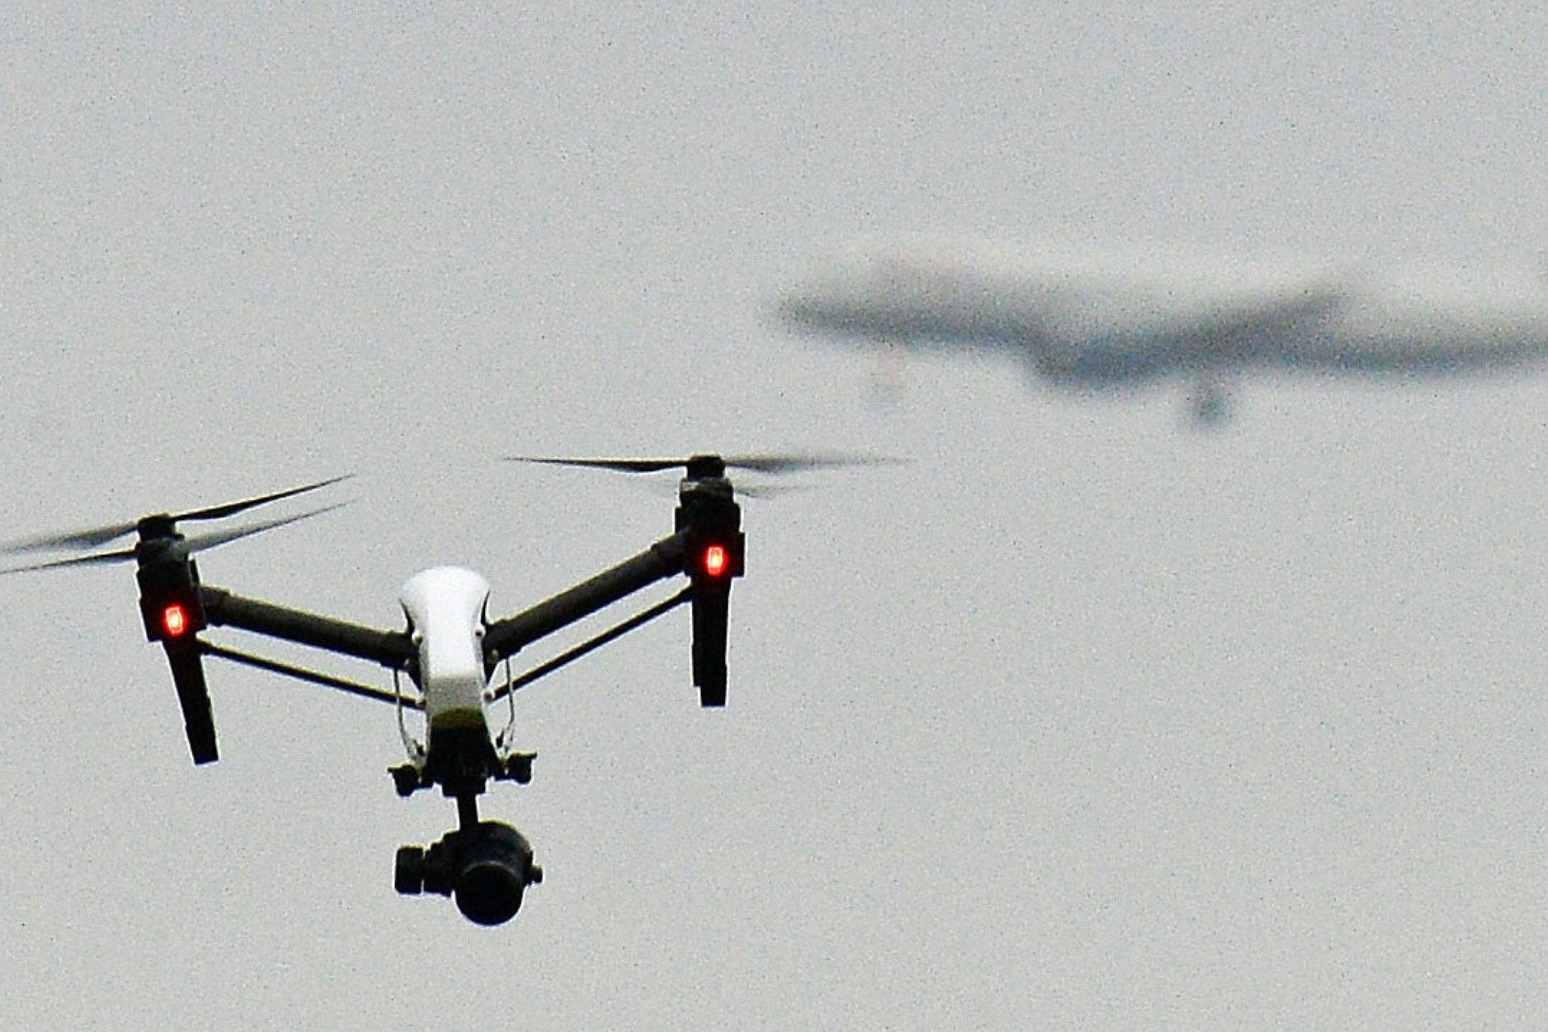 DRONE OWNERS FACE £1,000 FINE FOR FAILING TO SIGN UP TO NEW REGISTER